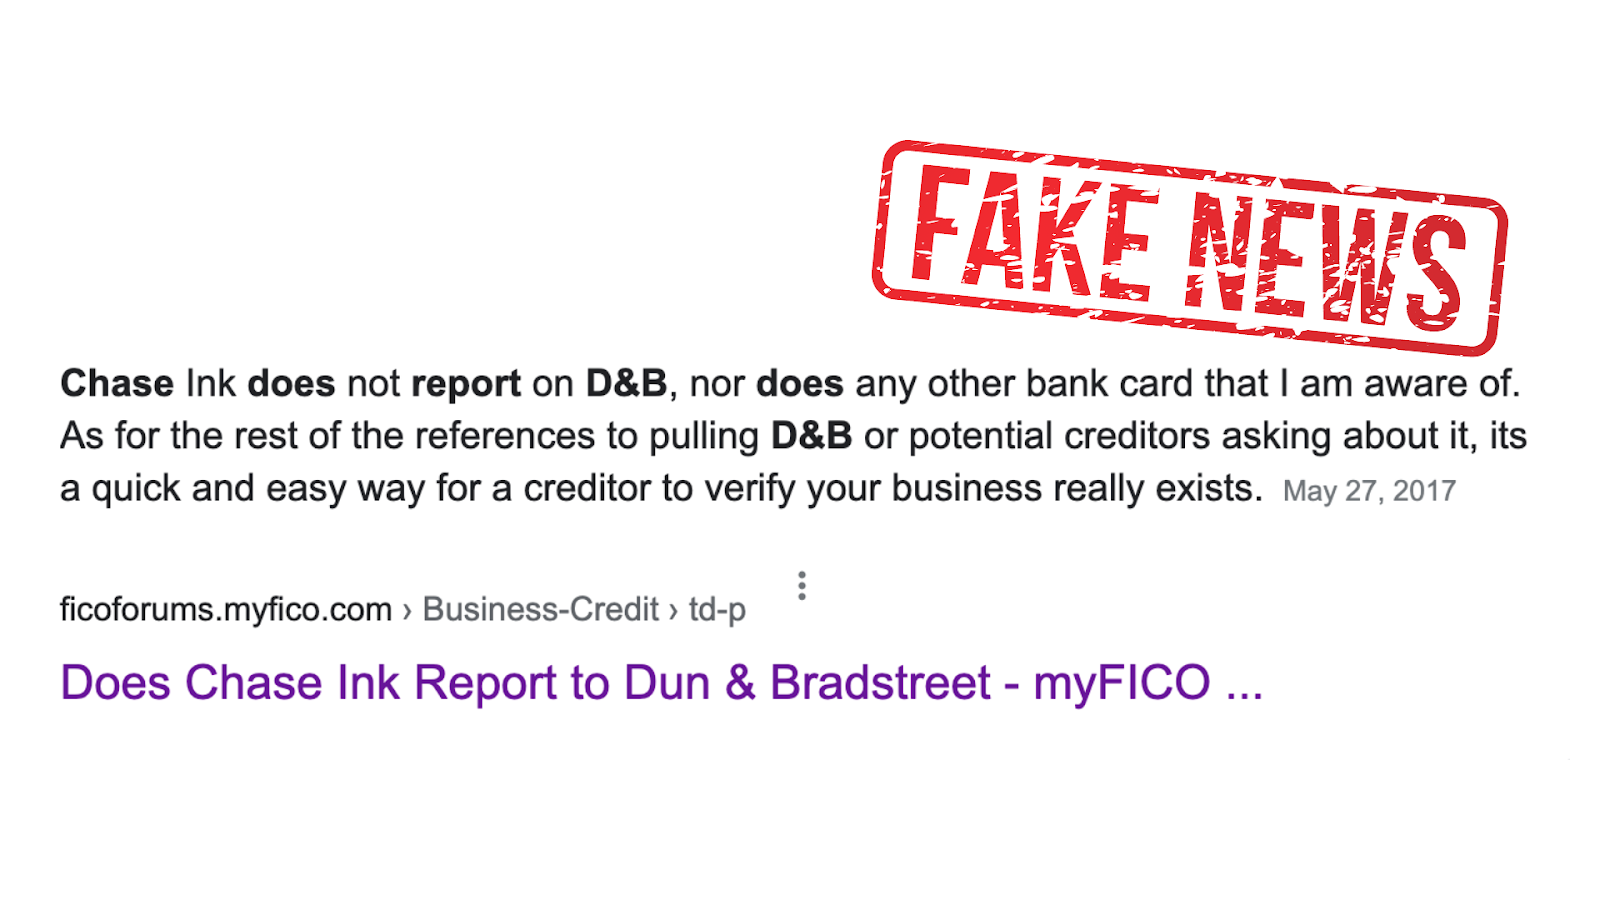 Does Chase Ink Report to D&B?